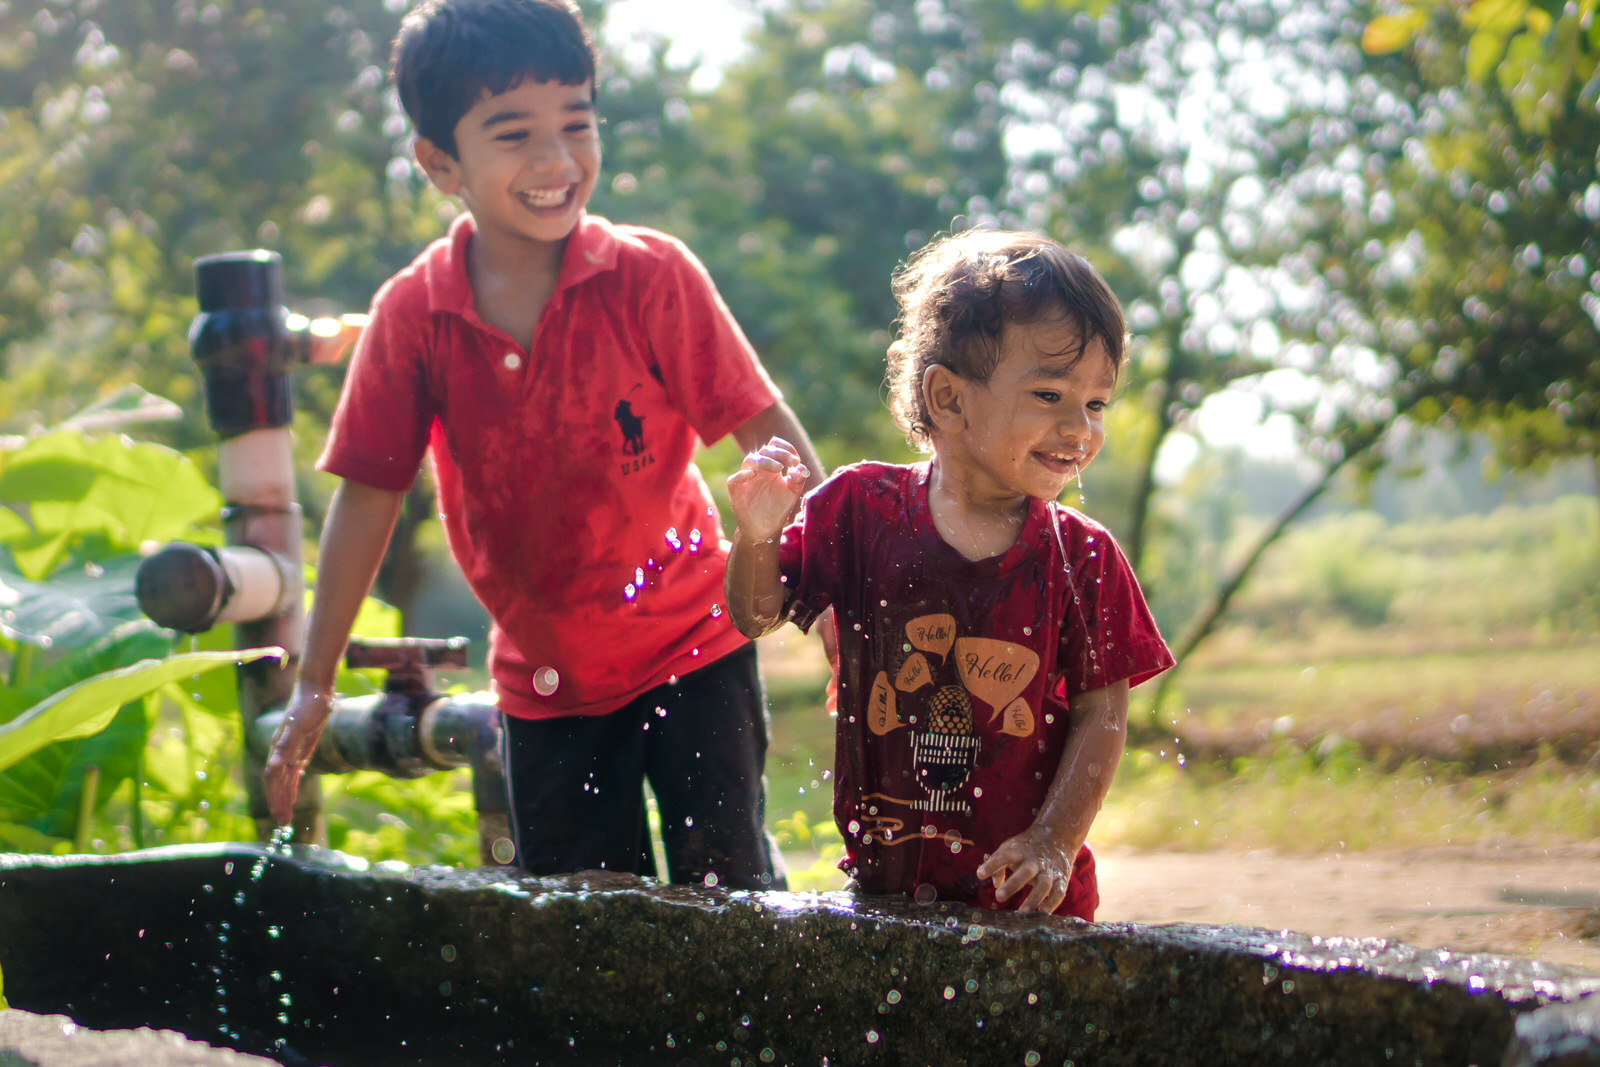 23122017-Boys-Playing-Water-Tank-191.jpg